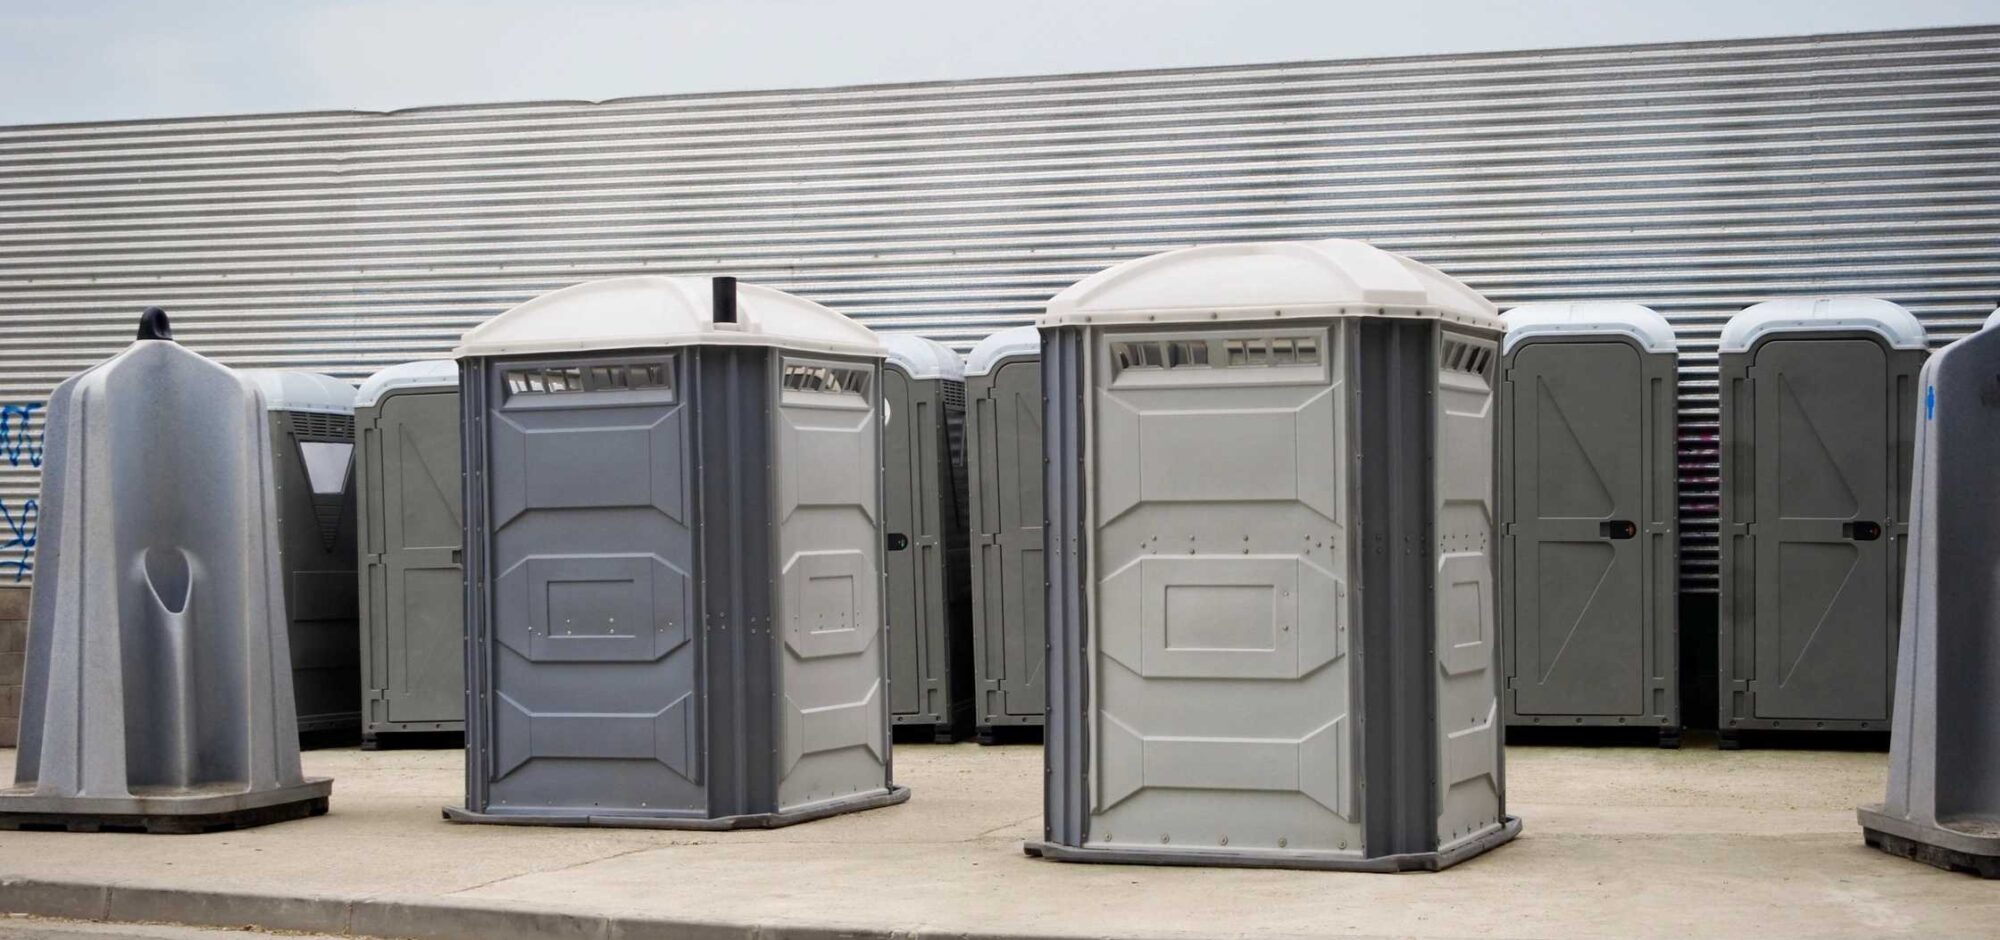 Affordable Porta Potty Services, Affordable LLC